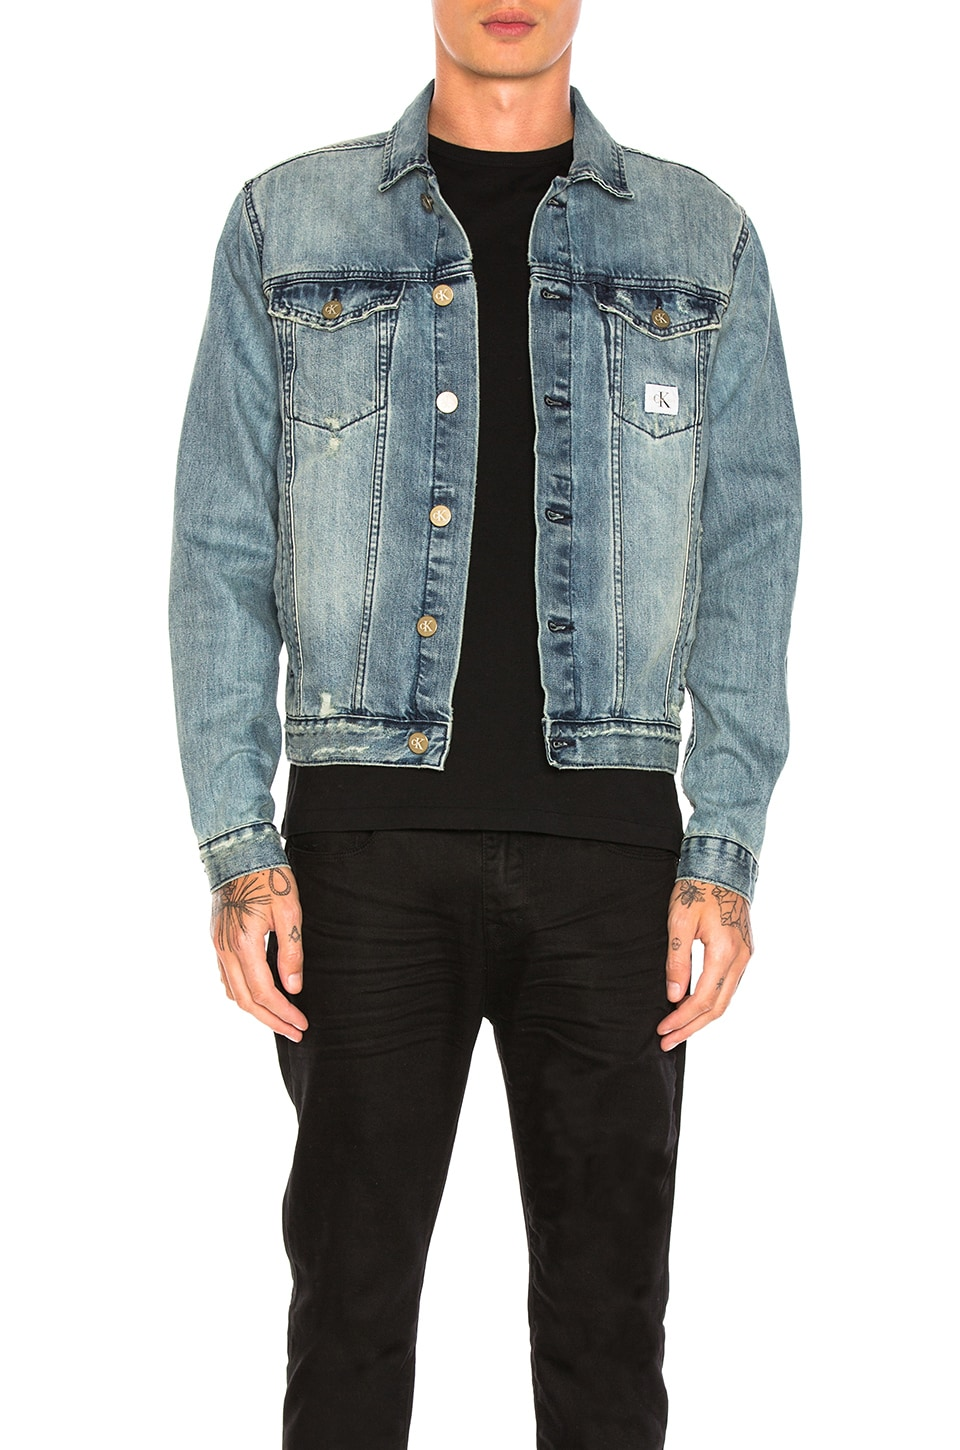 Reissue Logo Trucker Jacket by Calvin Klein